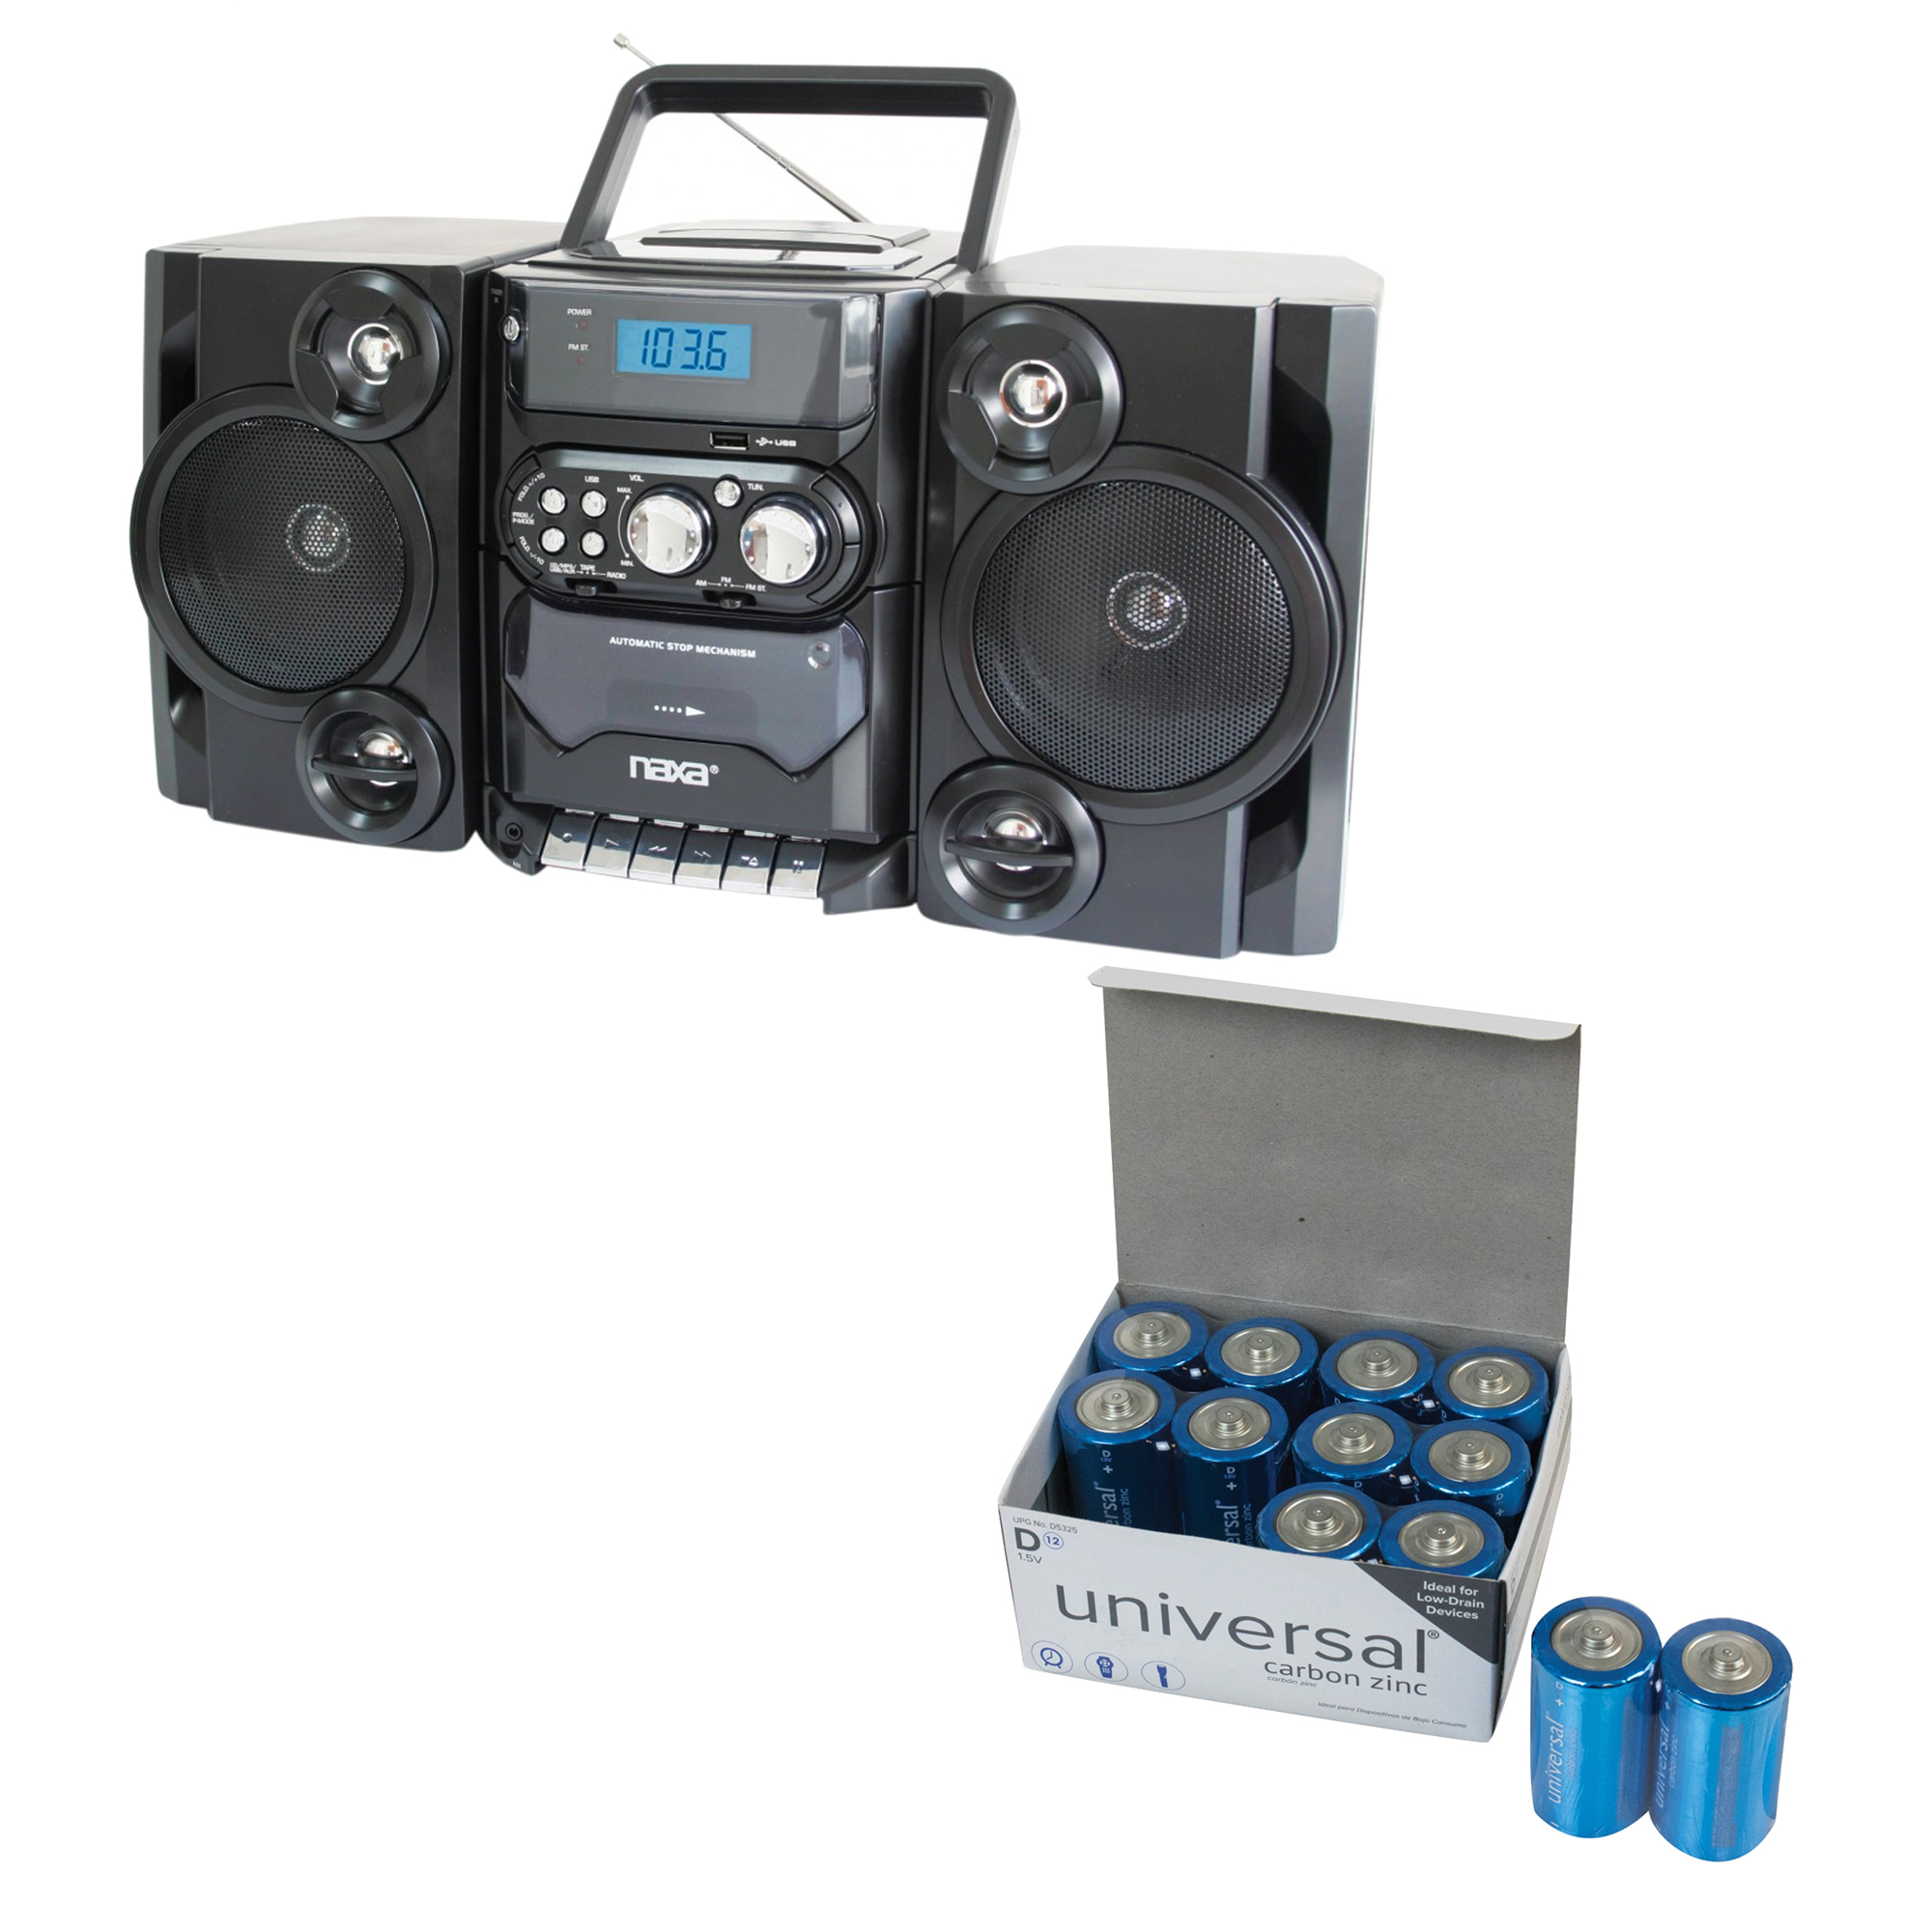 Naxa NPB428 Portable CD/MP3 Player With AM/FM Radio, Detachable Speakers, Remote & USB Input & UPG D 12 PACK